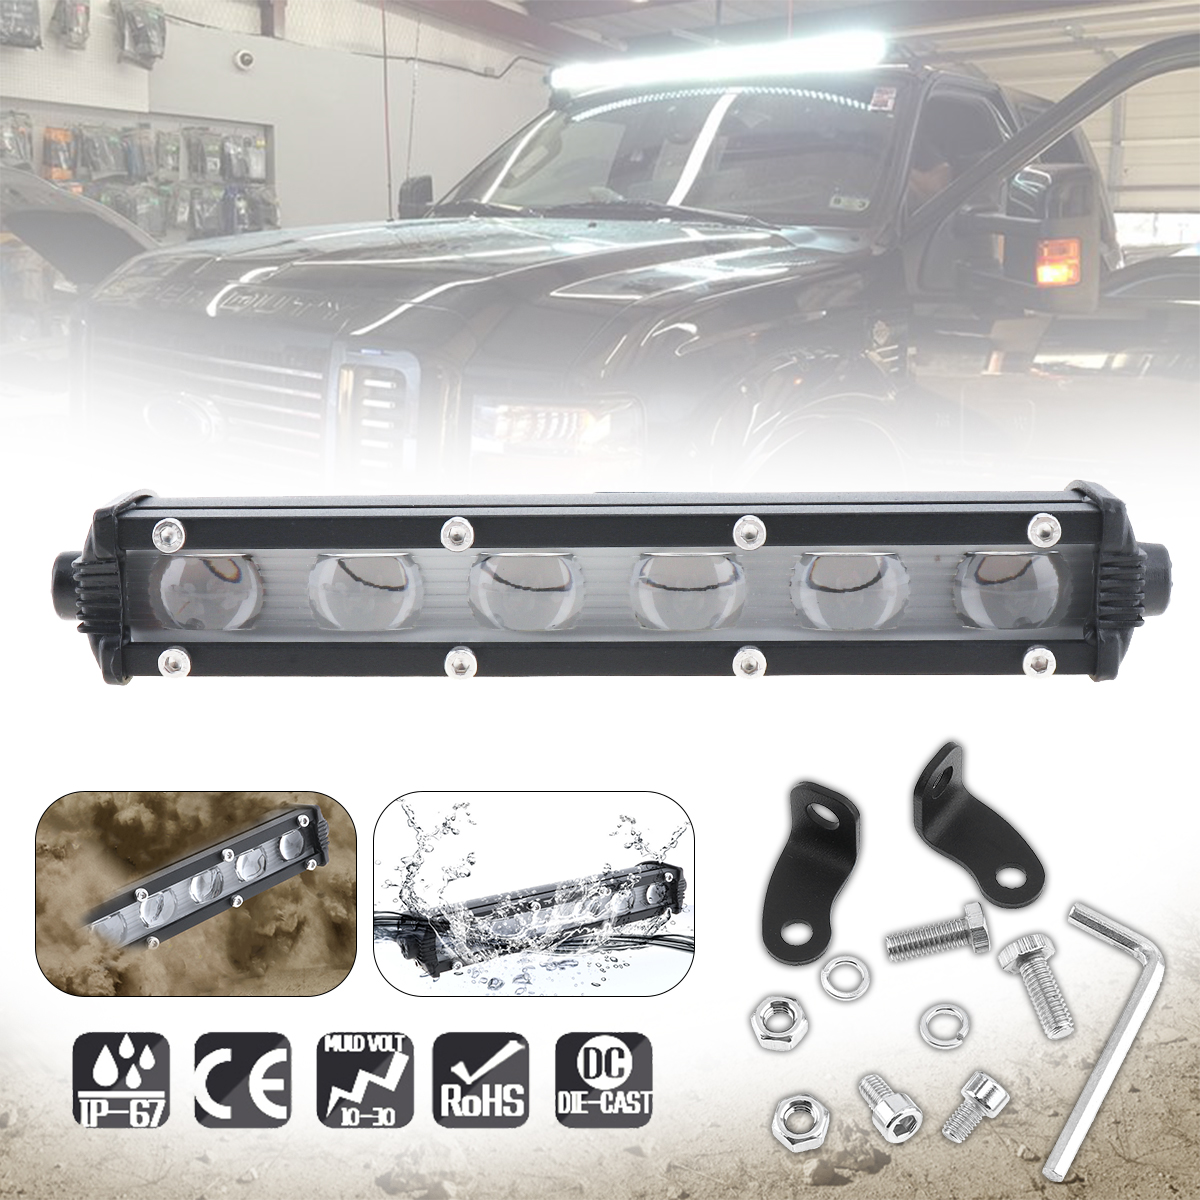 6 Inch 30W 6000LM LED Work Light Lamp for Motorcycle Tractor Boat Off Road 4WD 4x4 Truck SUV ATV